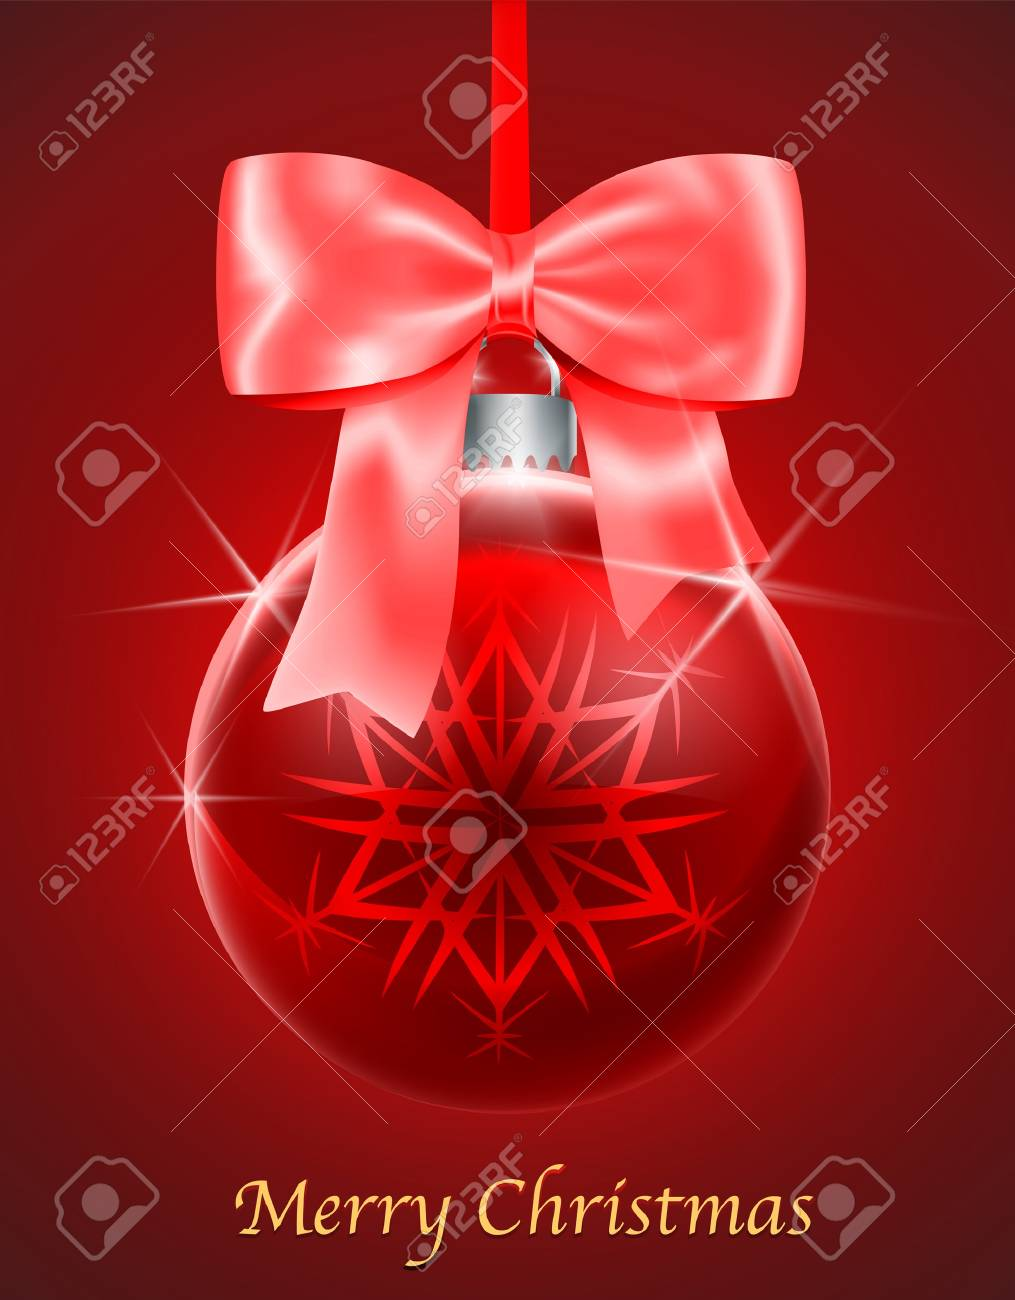 Merry Christmas Gift Card With Red Glossy Christmas Ball Tied ...